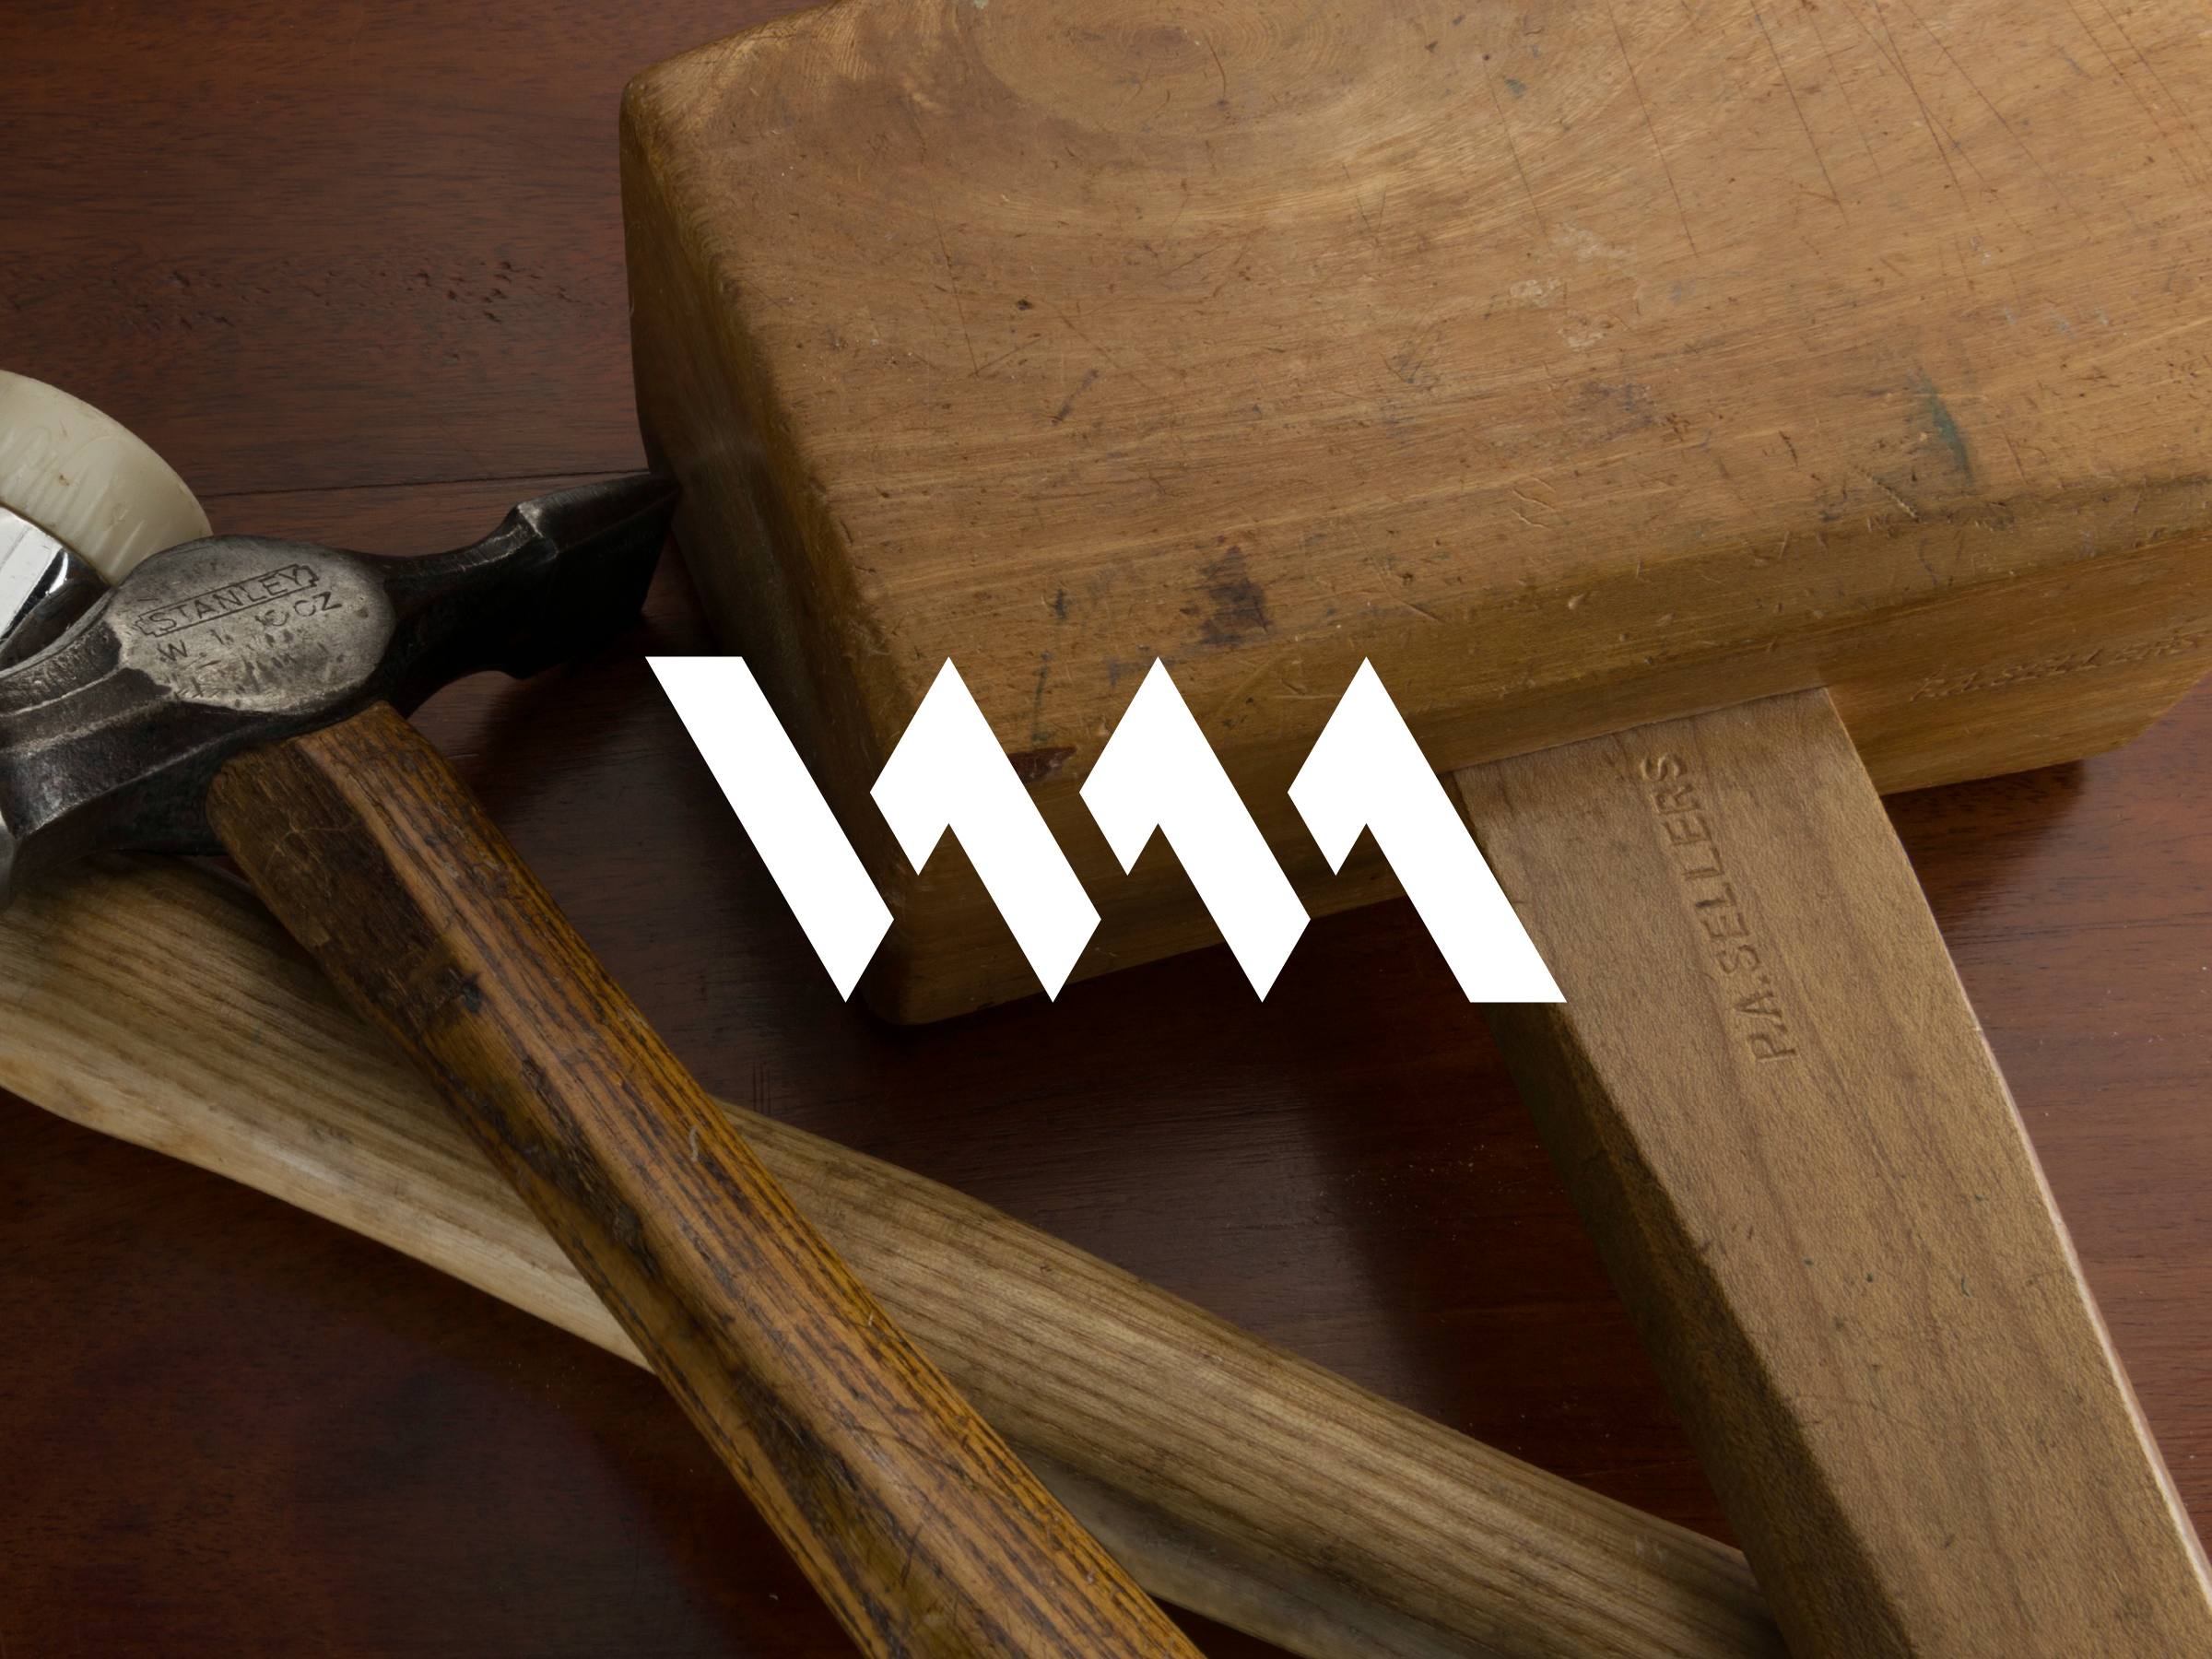 The Woodworking Masterclasses logo laid on top of an image